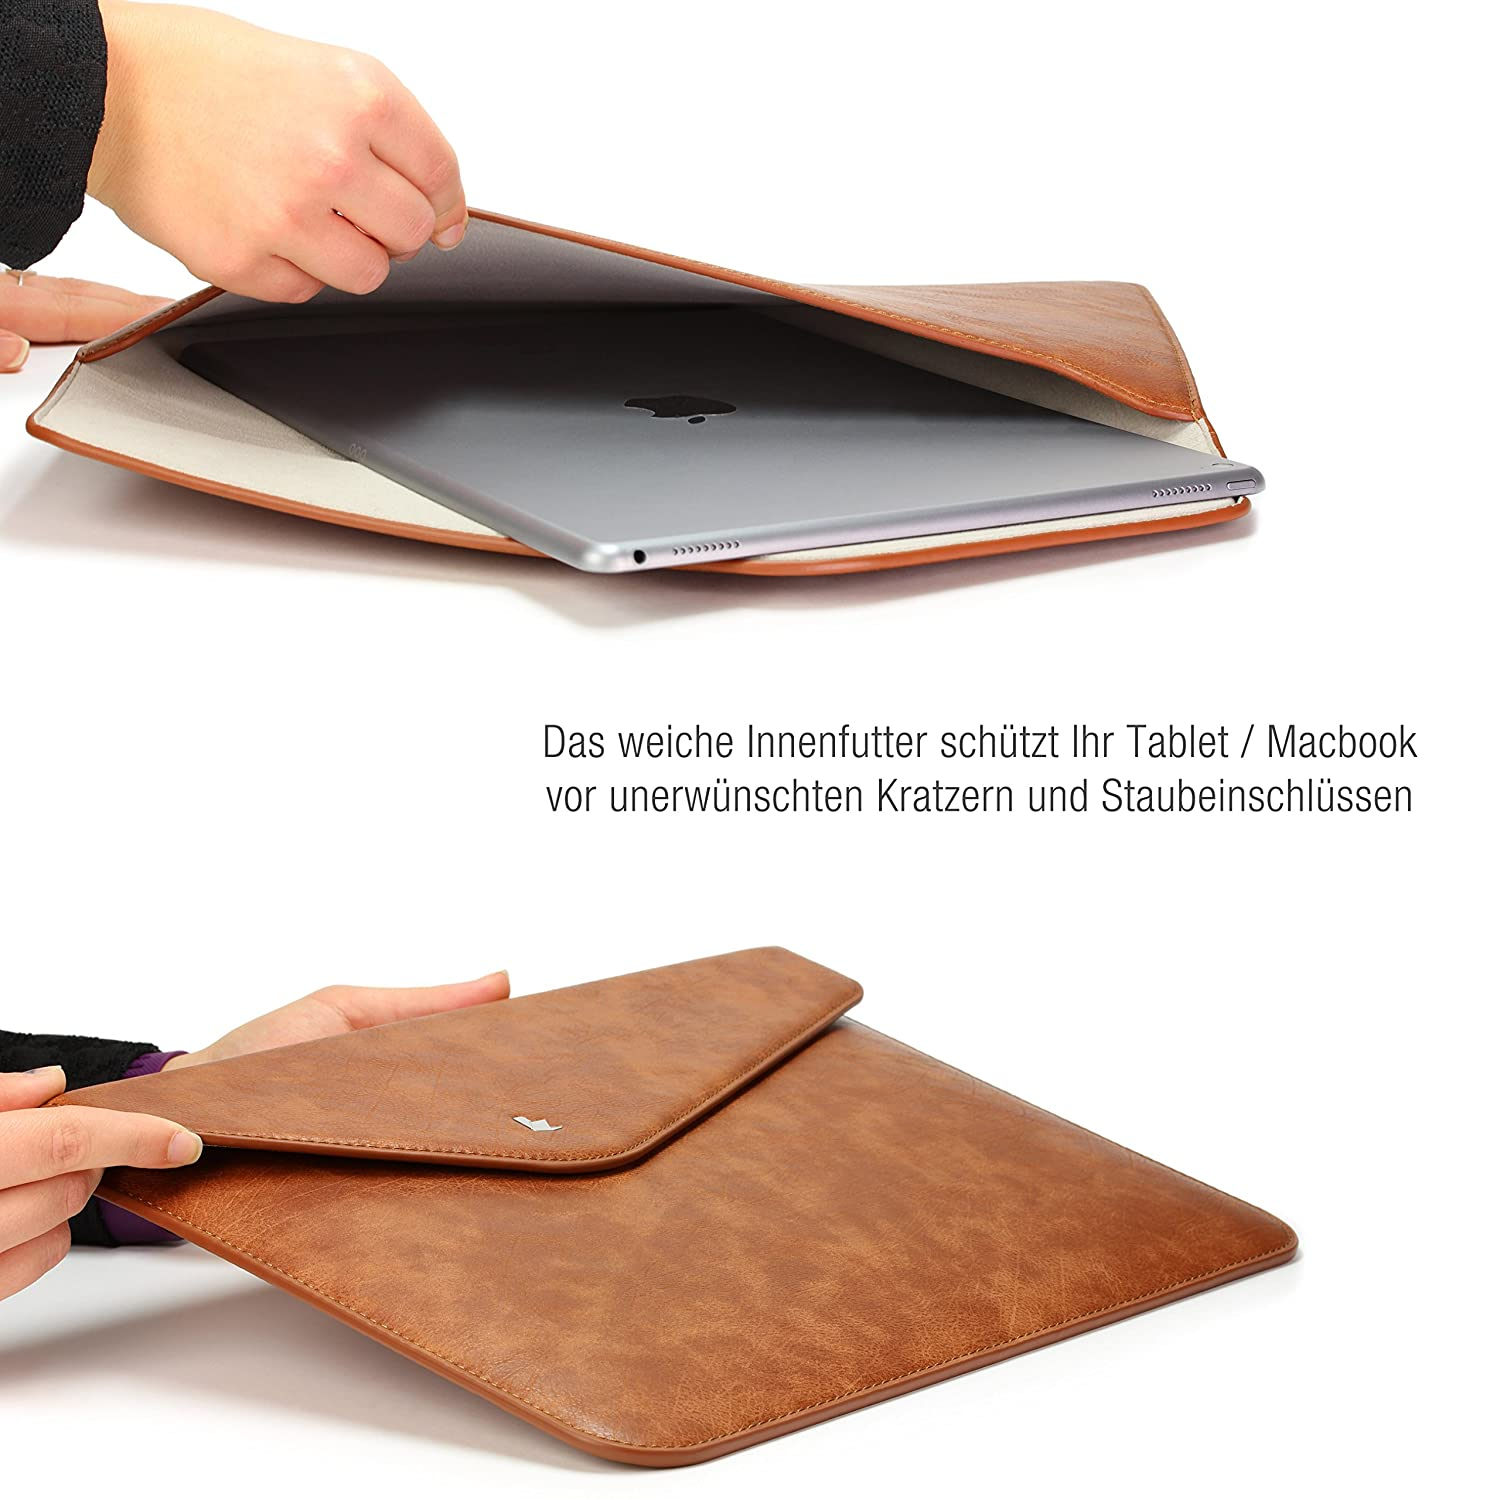 Original Urcover® Jison Fashion Designer Mac-Book  Amazon.de  Elektronik 0544143f5e7